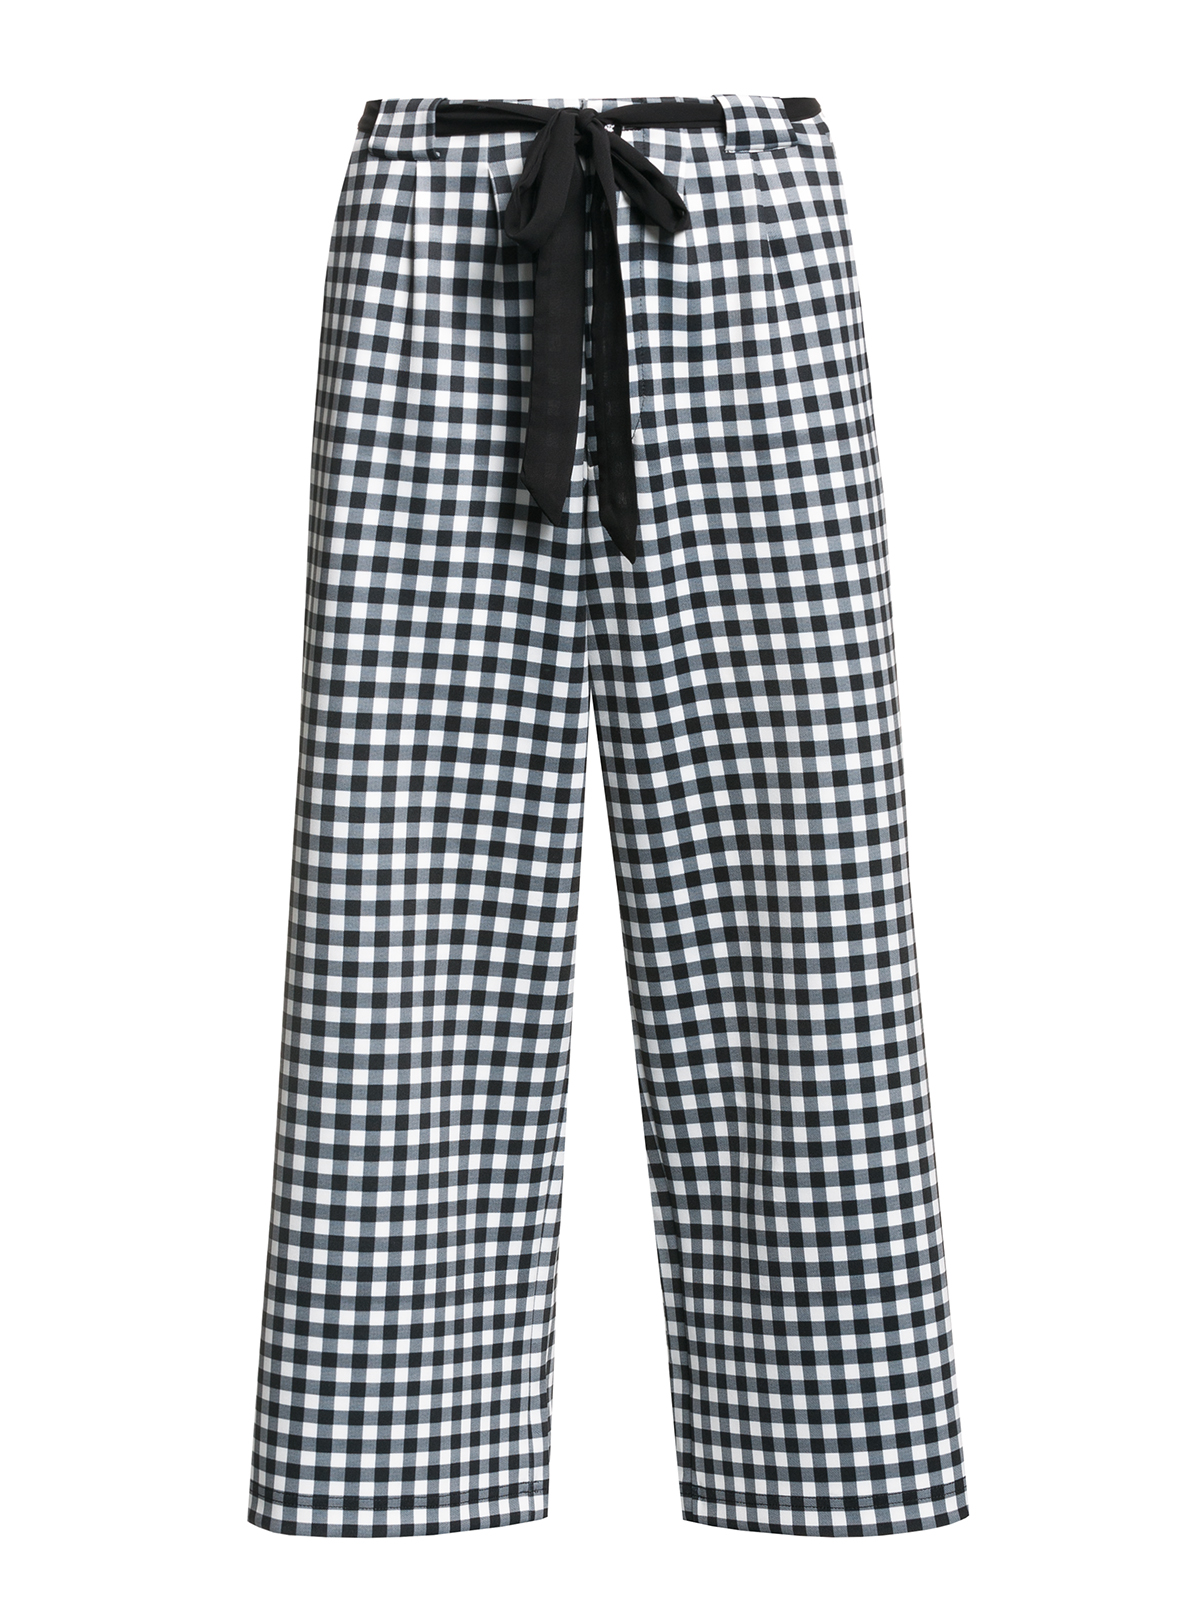 Hosen - Pussy Deluxe Plaid Cherries Damen Culotte – Größe S  - Onlineshop NAPO Shop